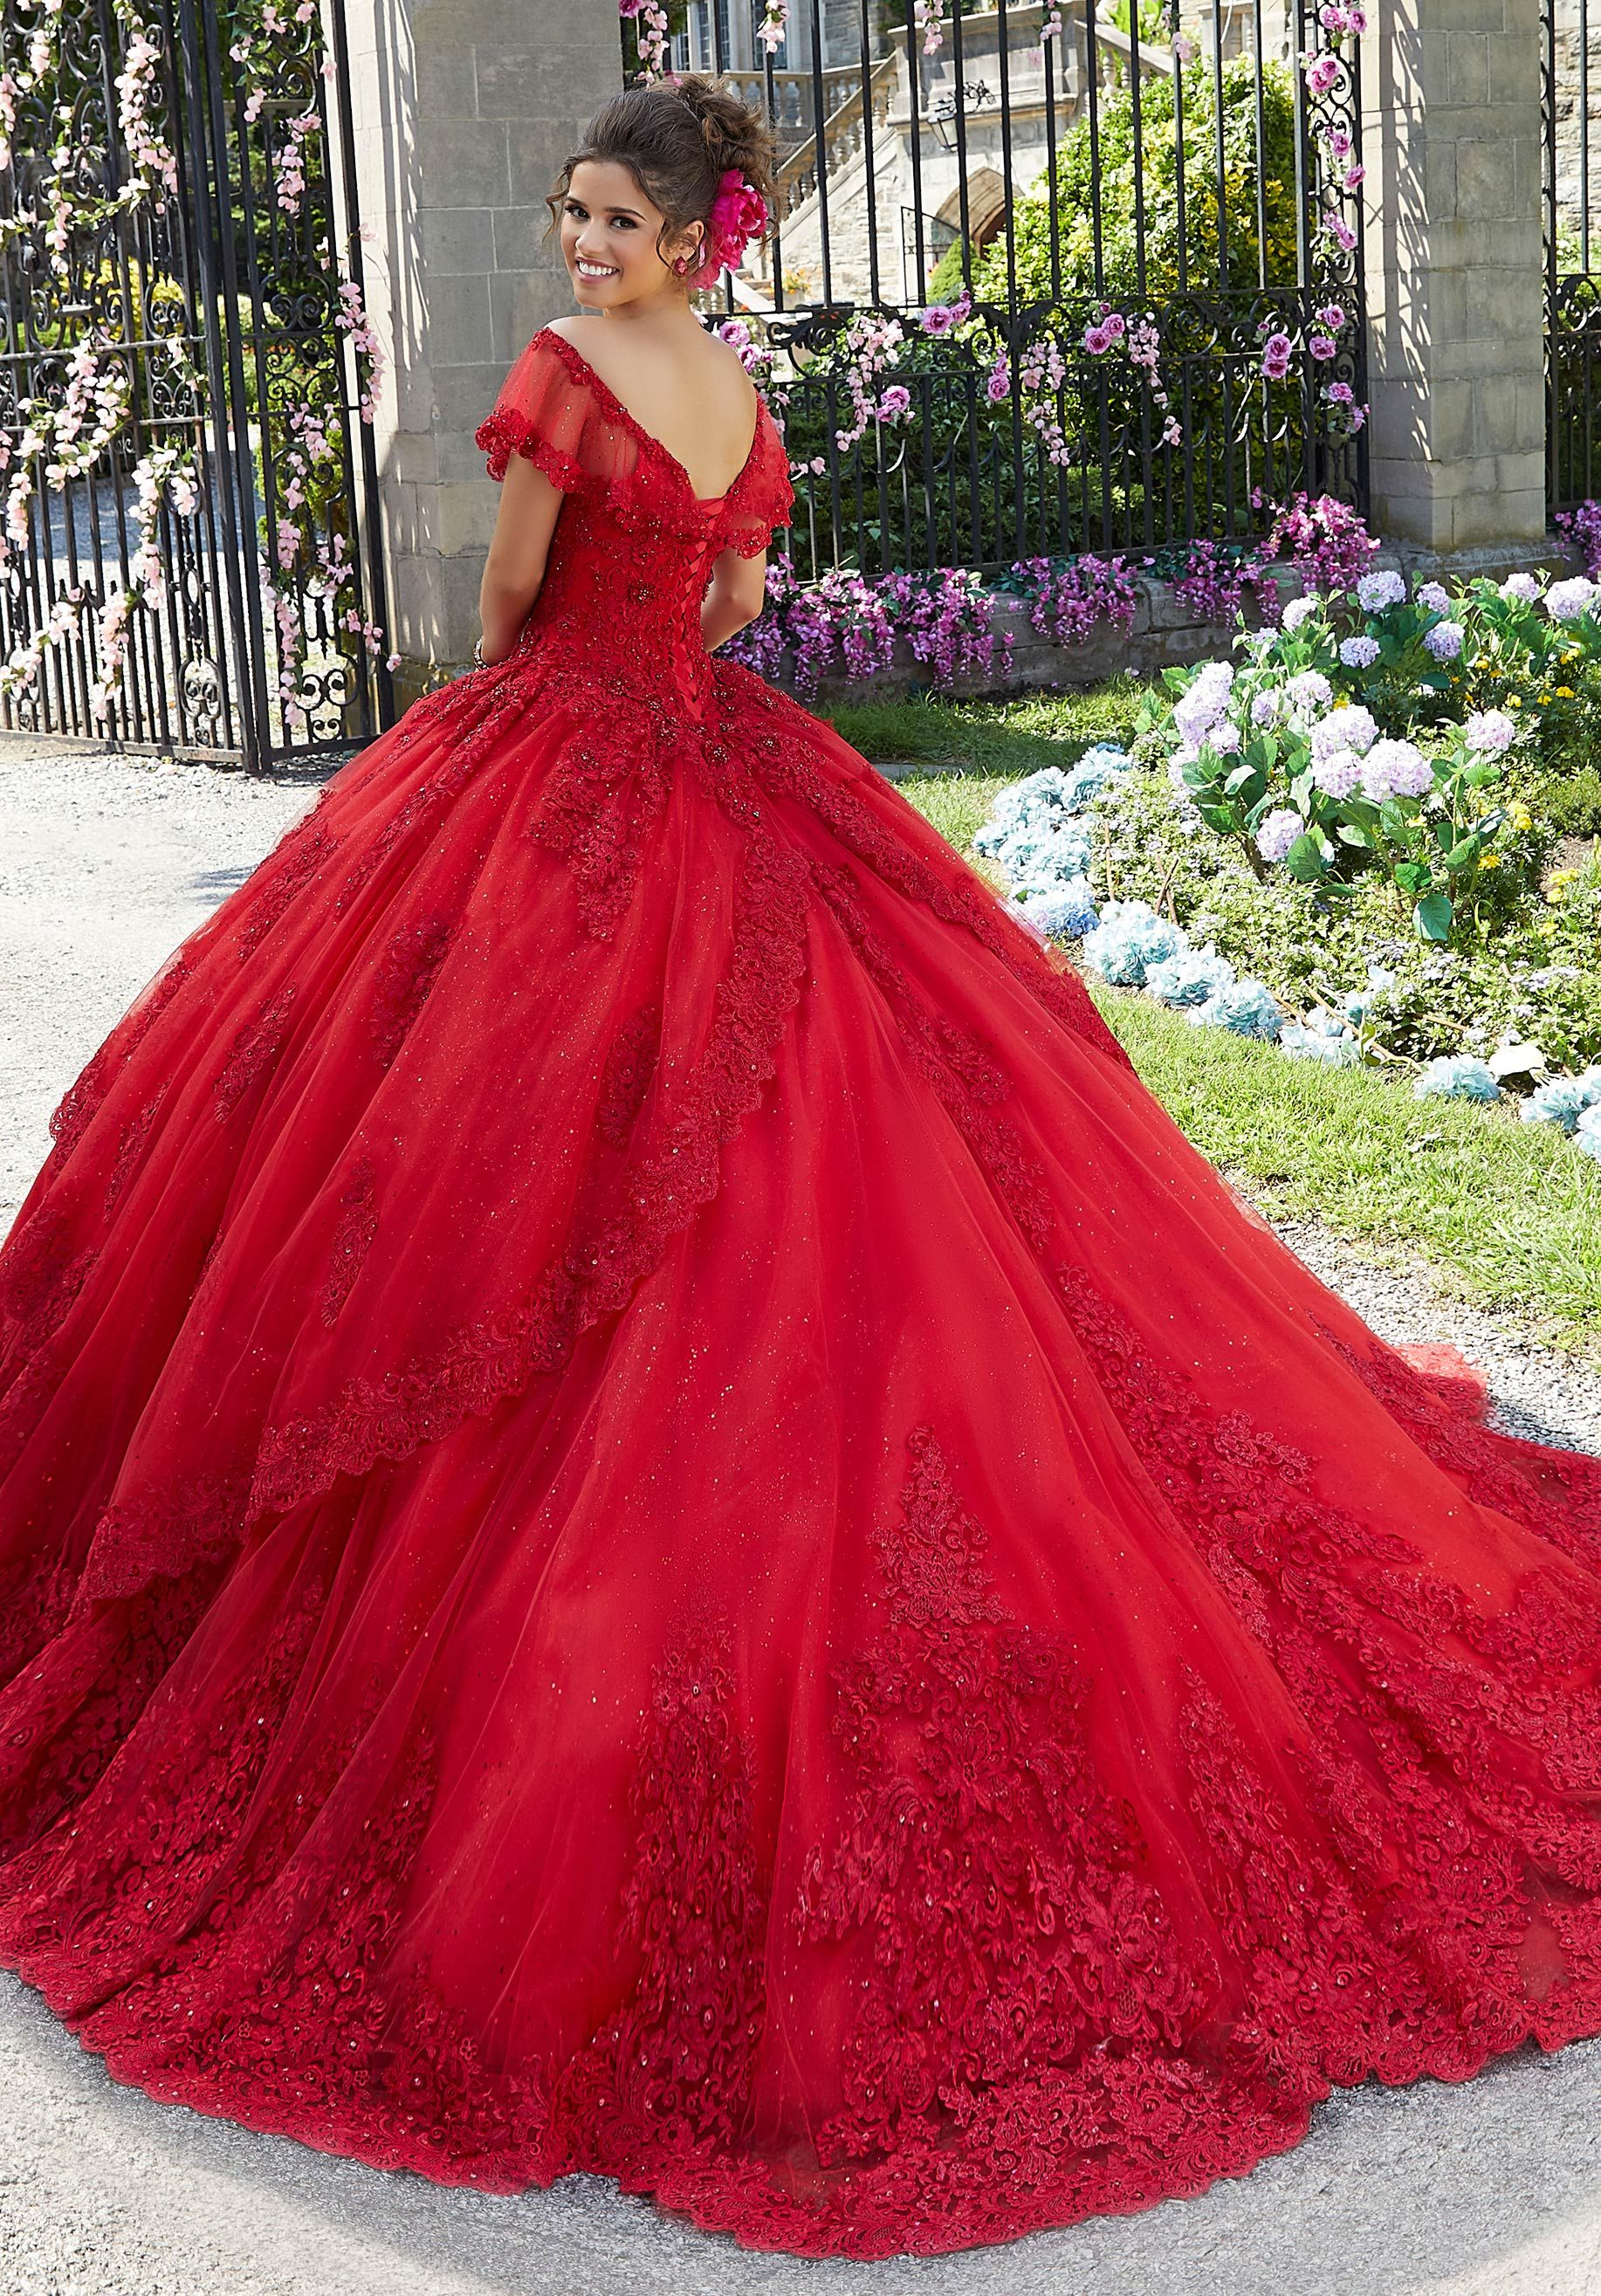 Princess Tulle And Glitter Tulle Quinceanera Dress Morilee Style 34025 Red Wedding Gowns Pretty Quinceanera Dresses Red Wedding Dresses [ 2630 x 1834 Pixel ]